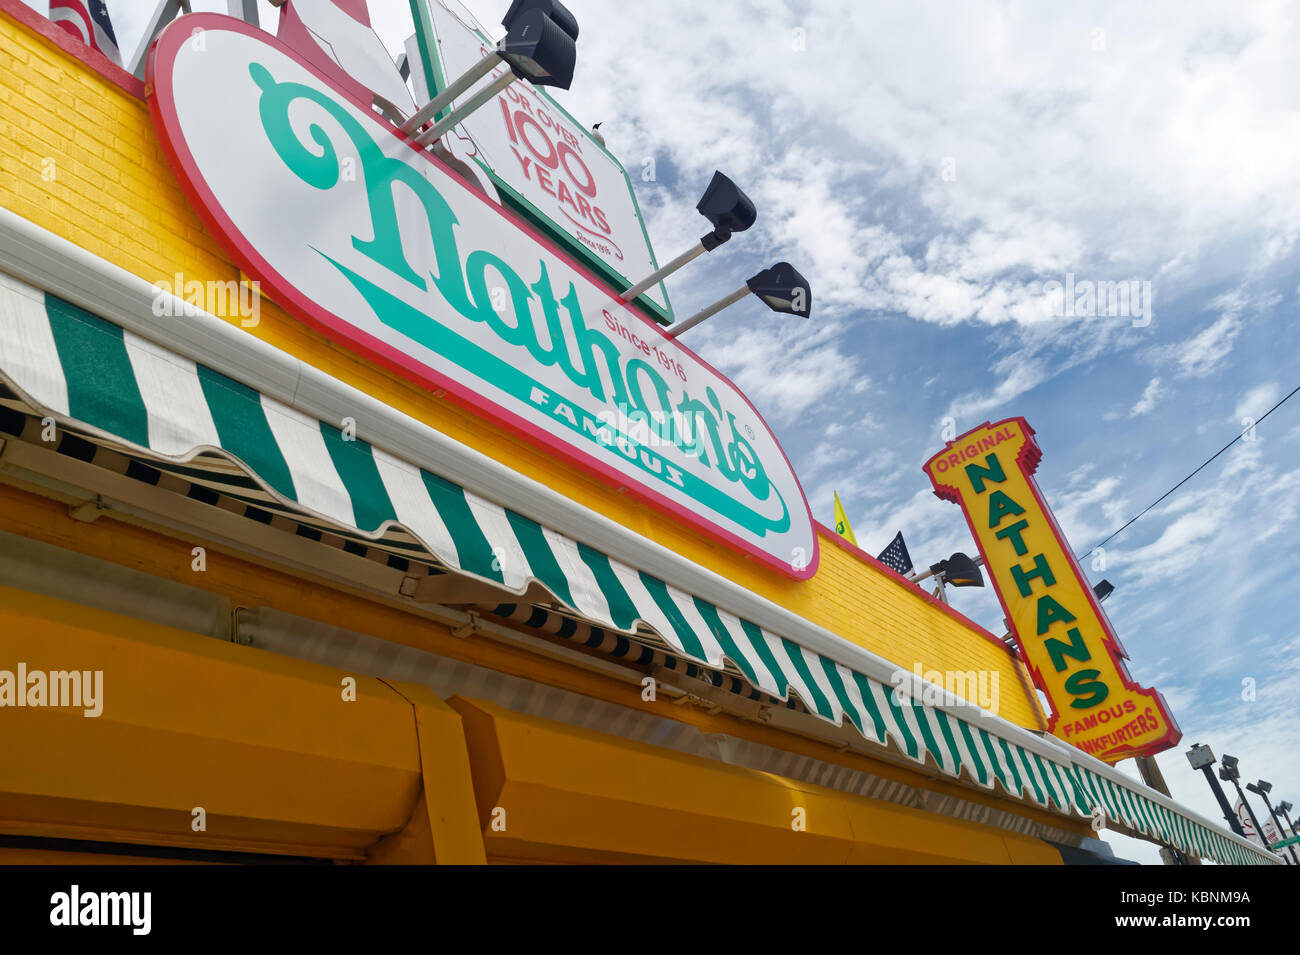 Nathan's Famous hot dog restaurant sign on the Coney Island boardwalk in Brooklyn, New York. - Stock Image